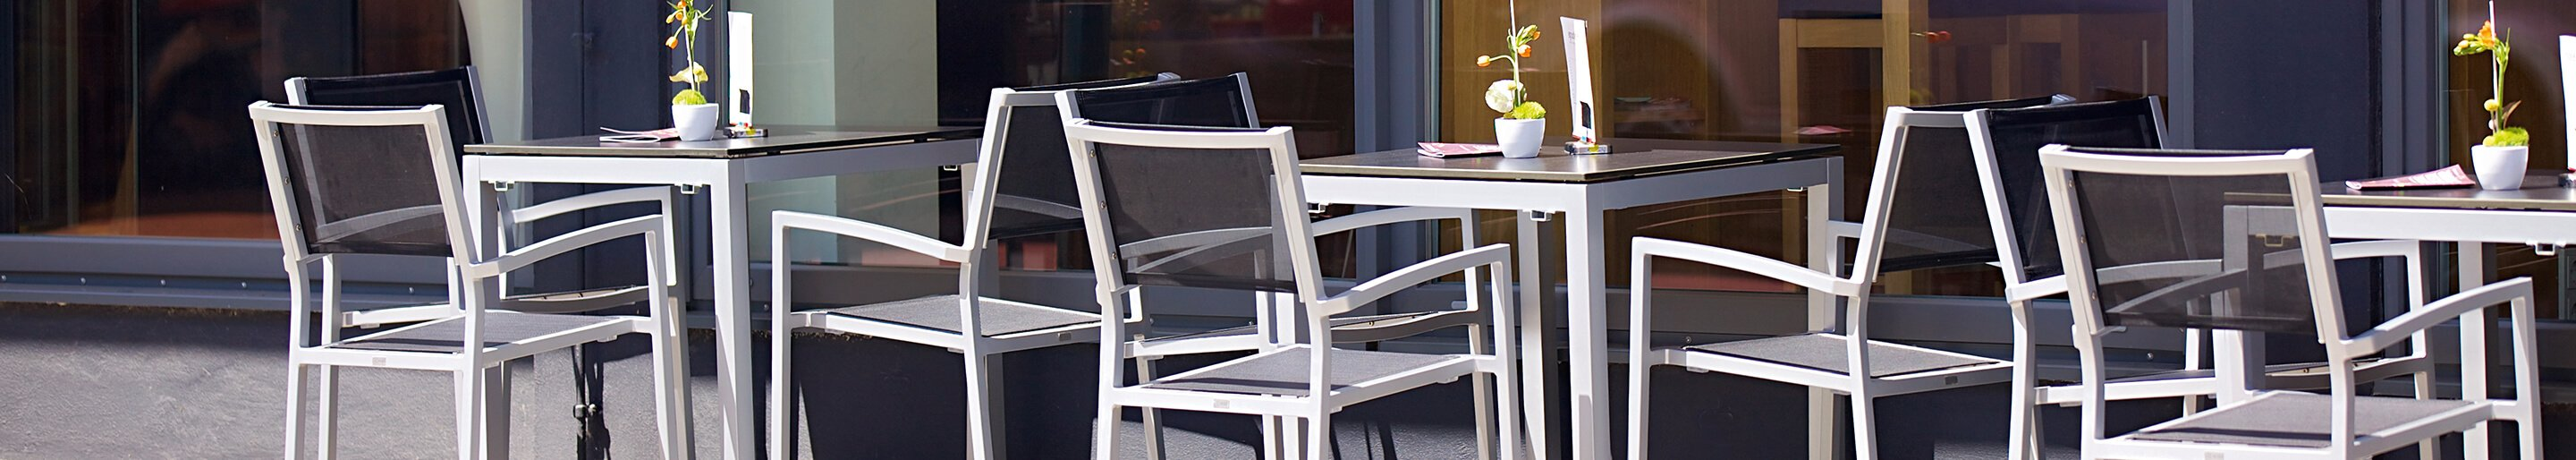 Outdoor Mesh chairs for your restaurant or hotel